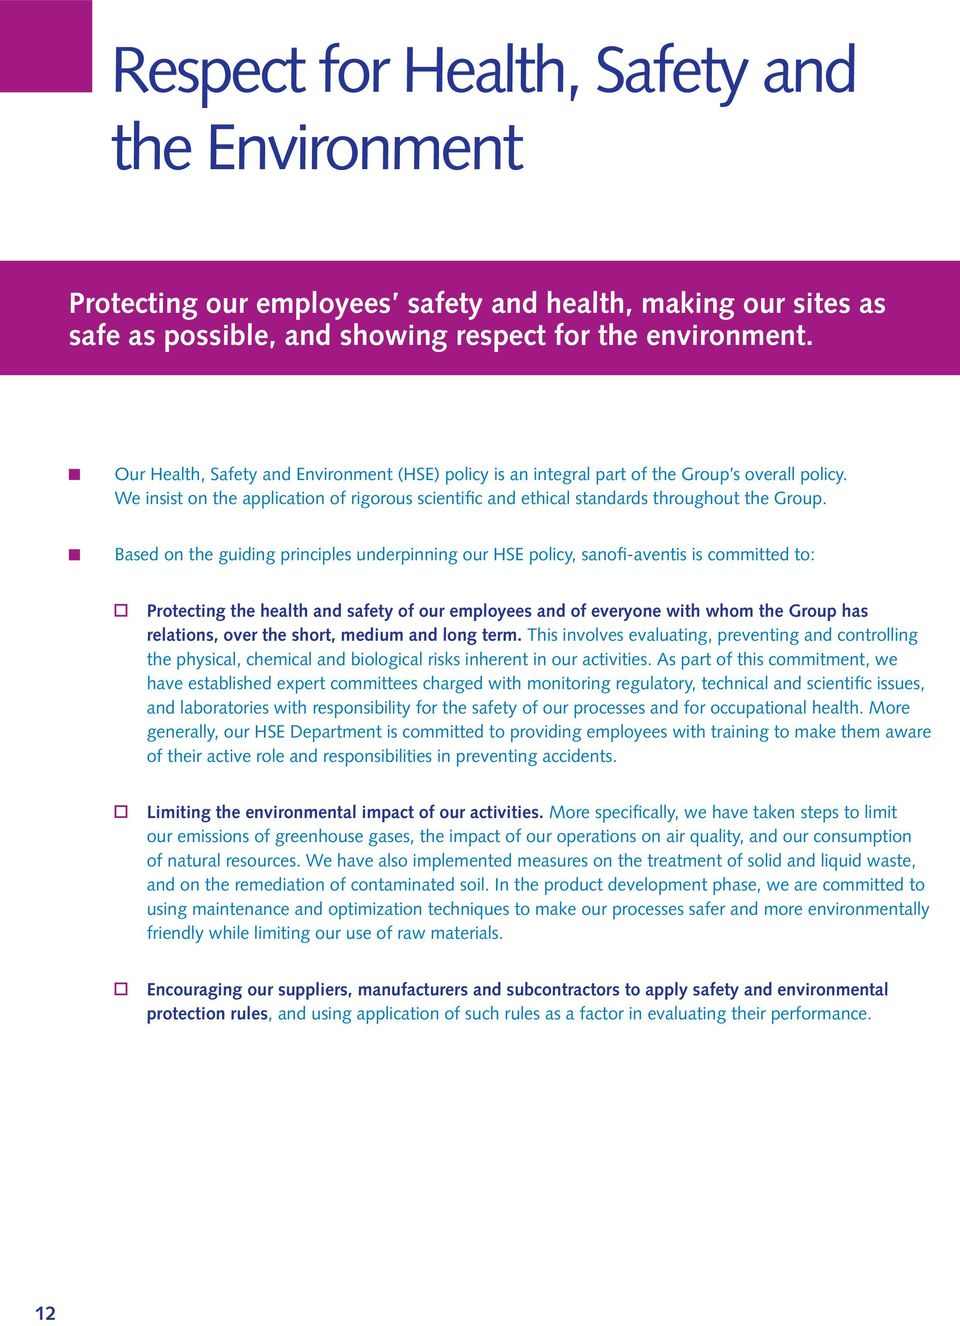 Based on the guiding principles underpinning our HSE policy, sanofi-aventis is committed to: Protecting the health and safety of our employees and of everyone with whom the Group has relations, over